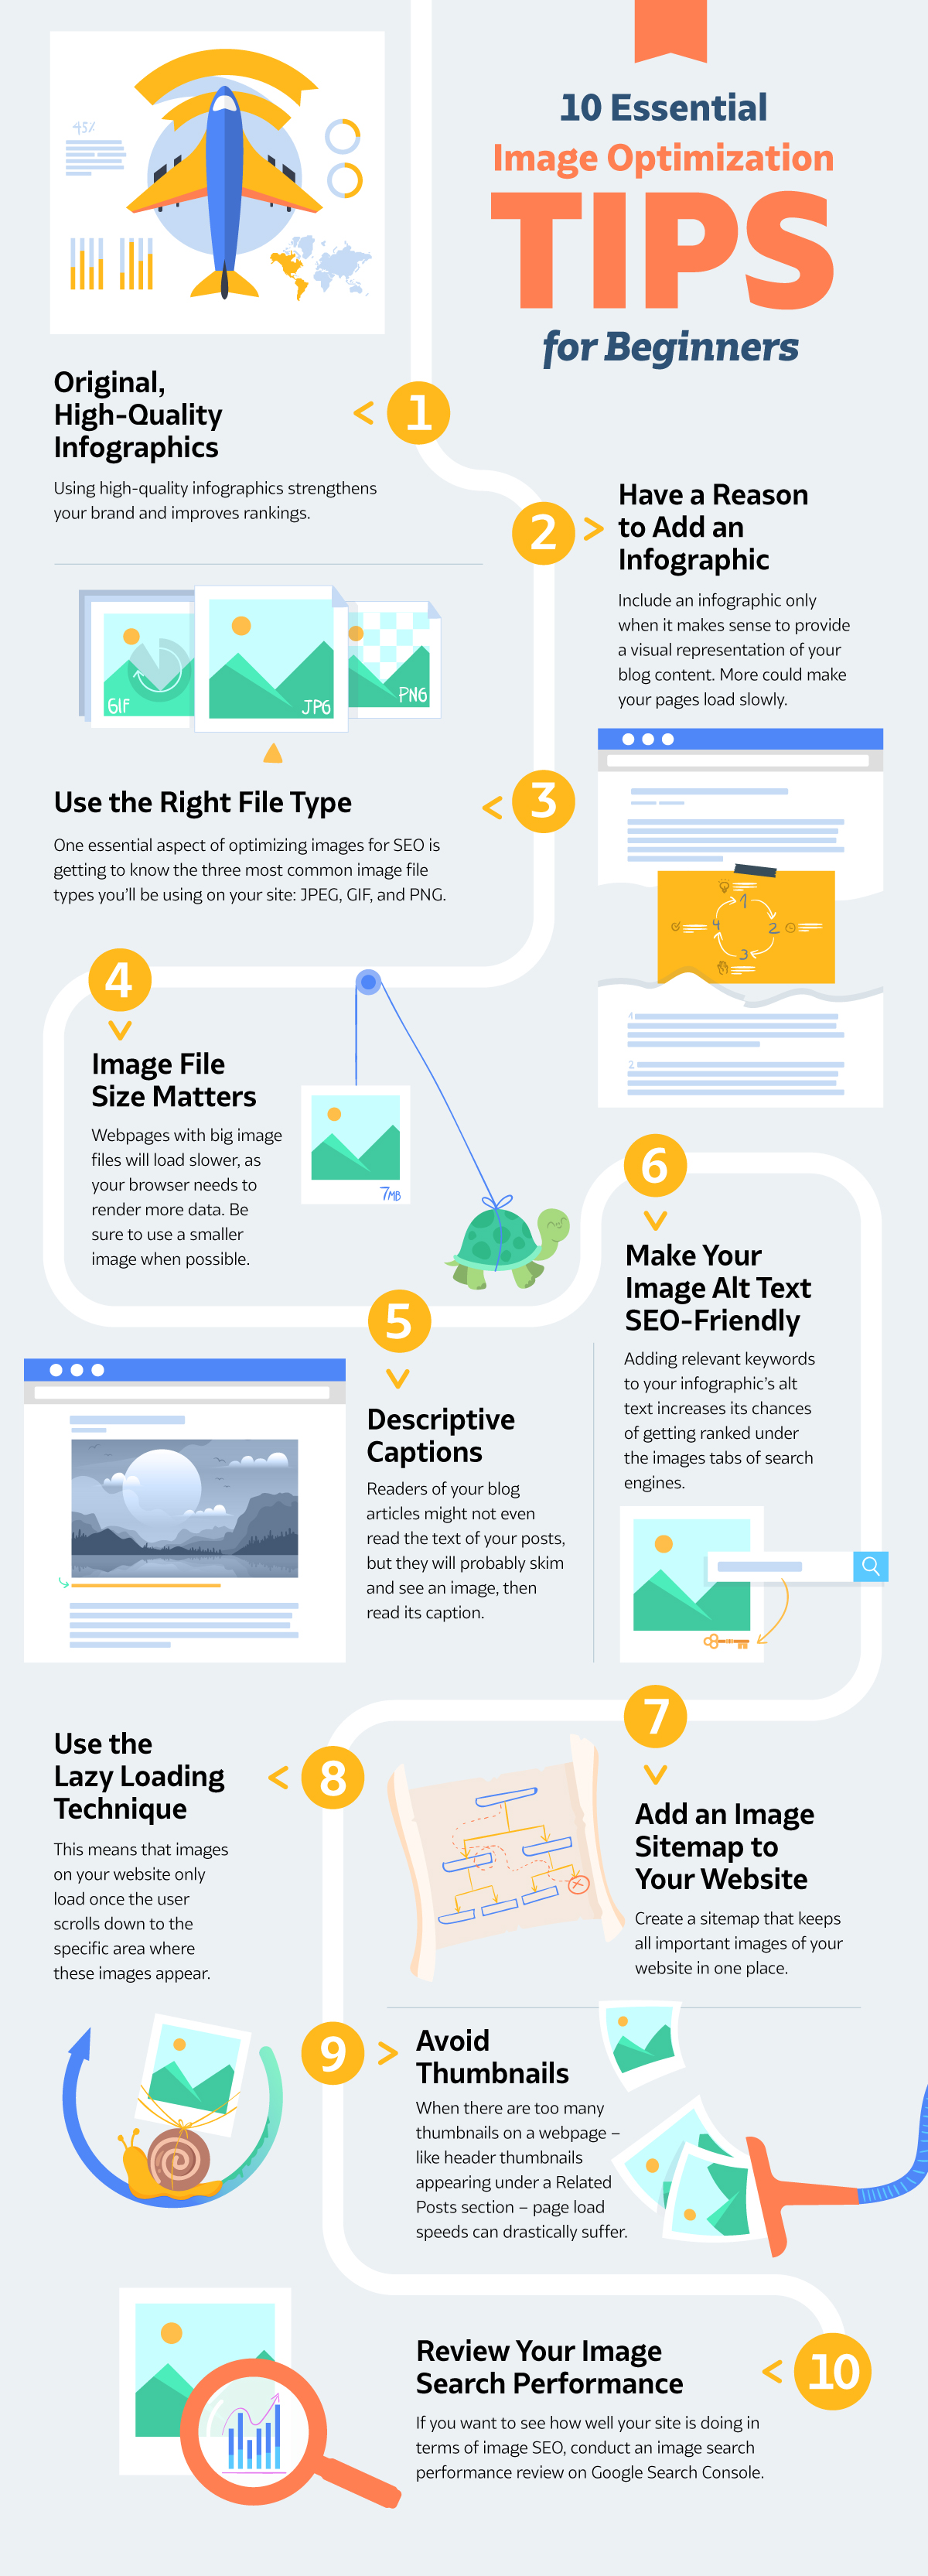 10 image optimization tips - infographic